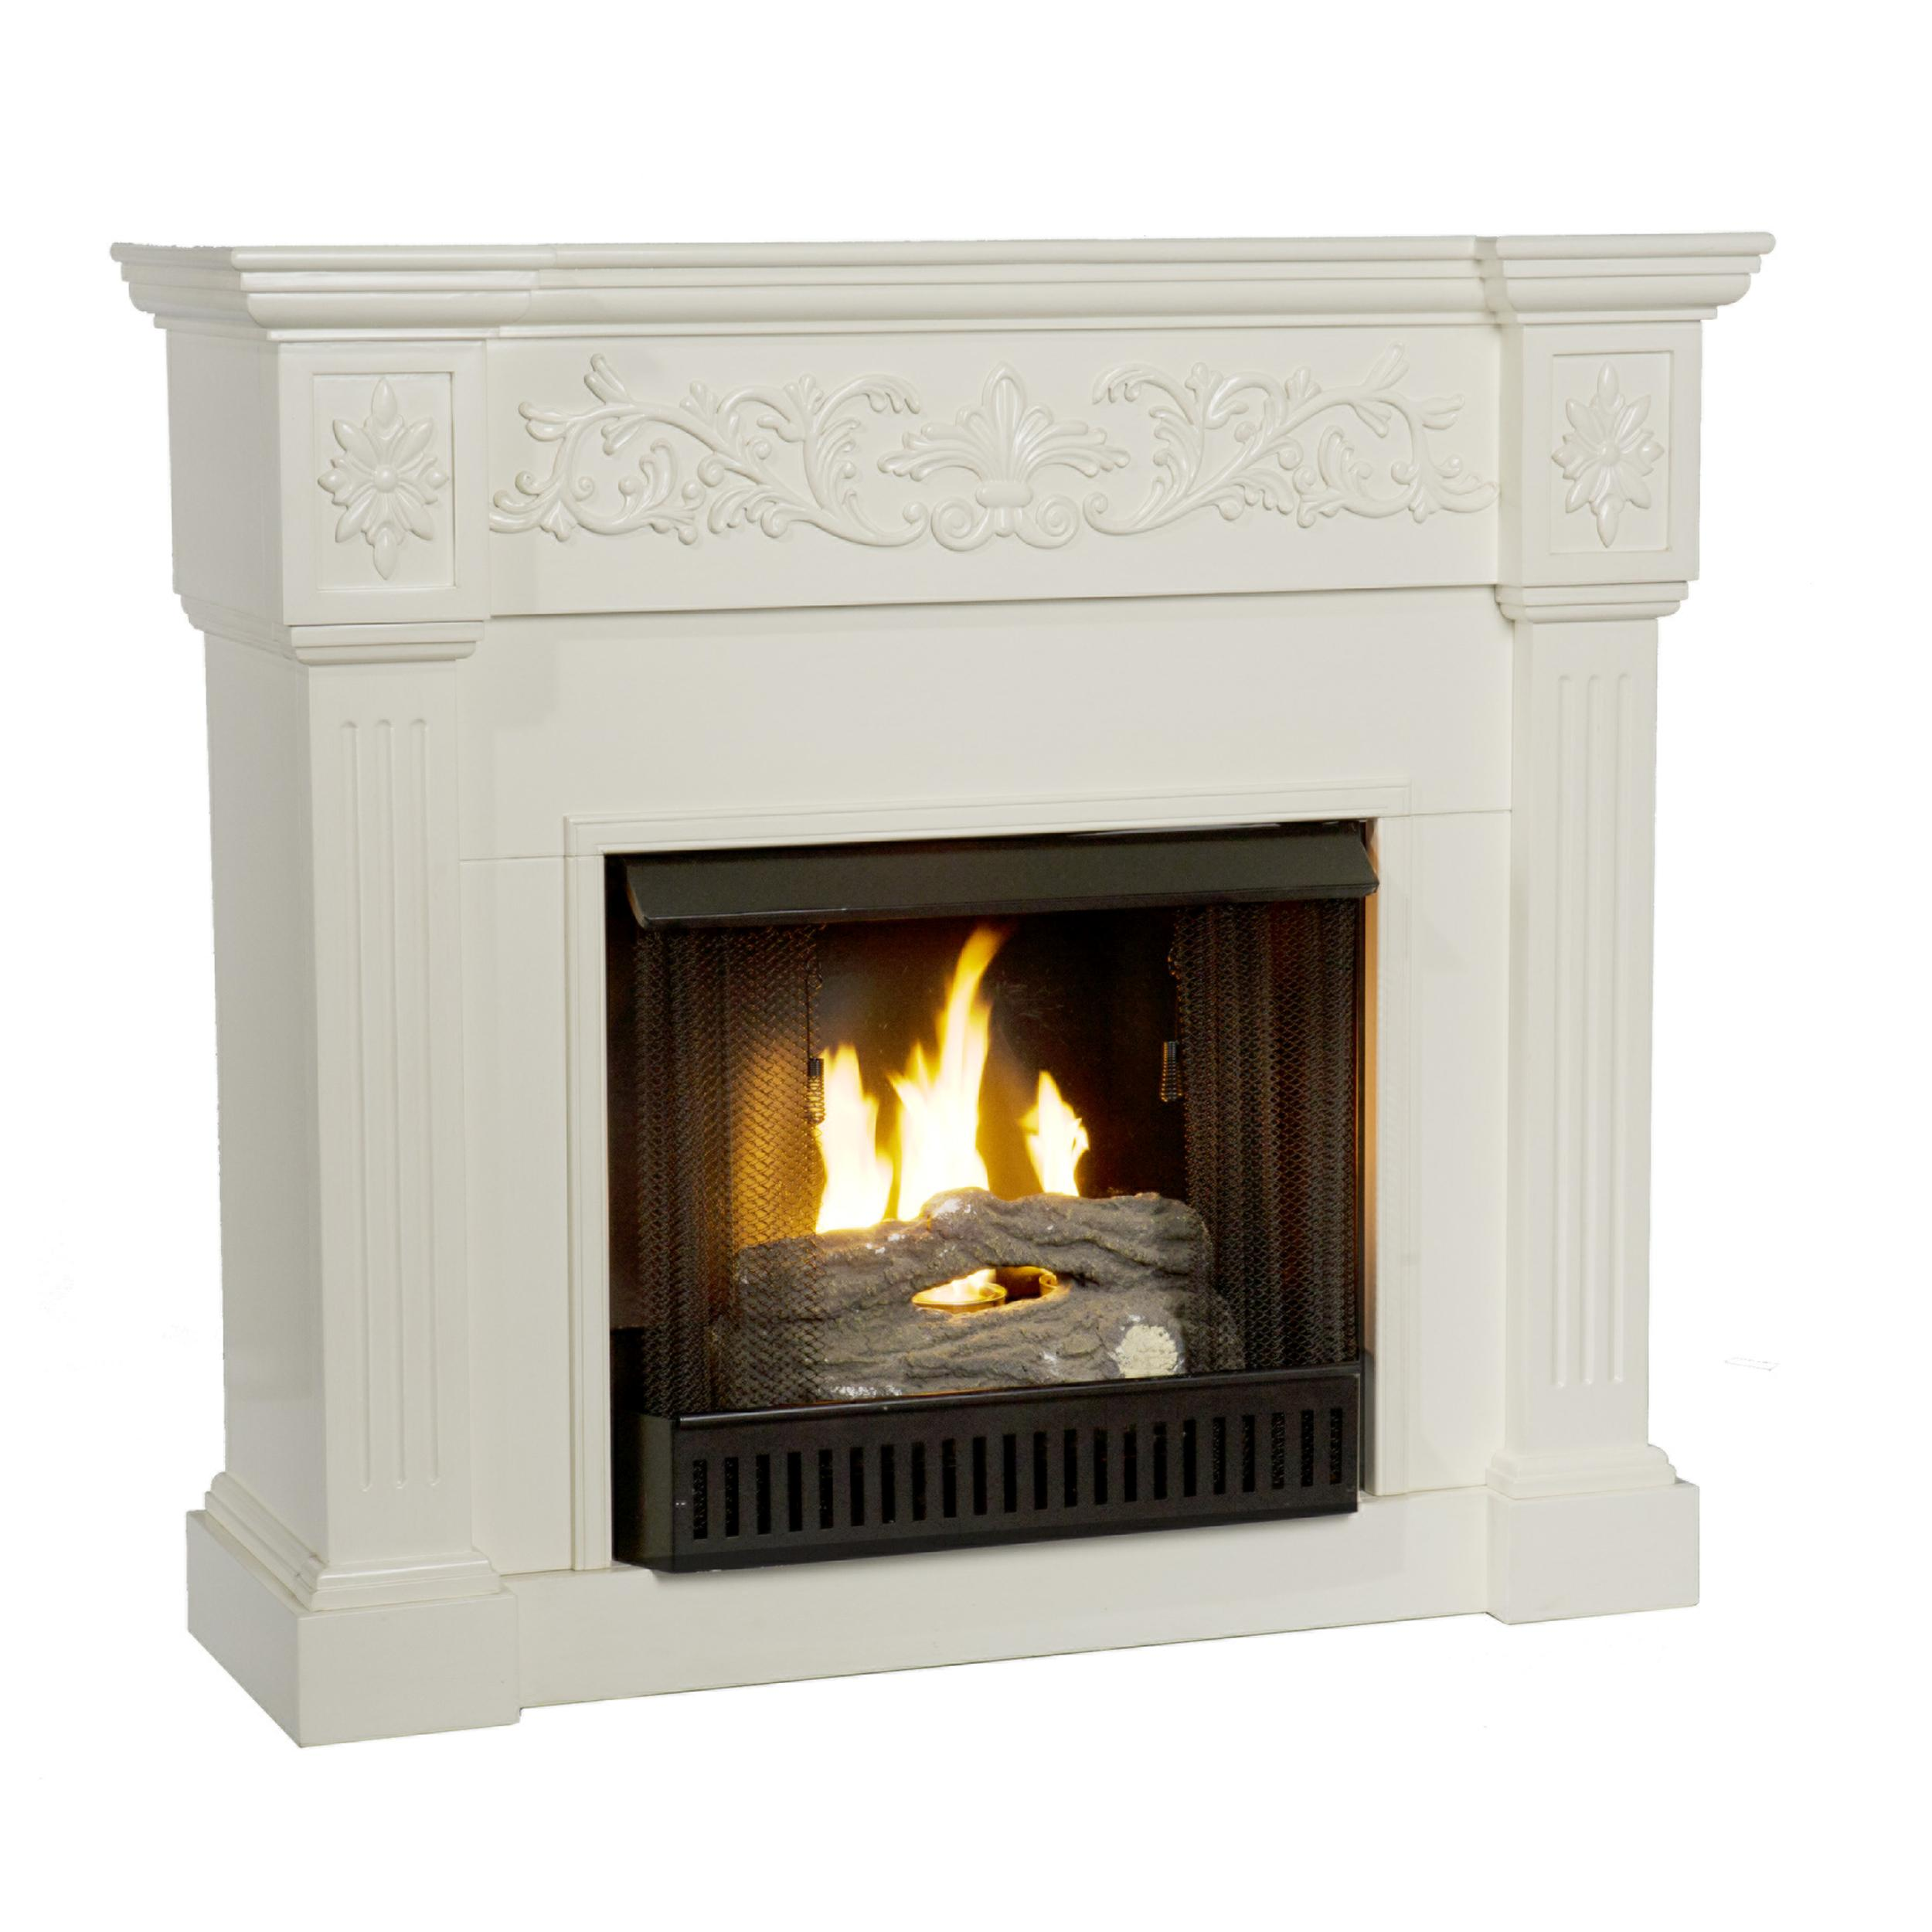 fireplace lowes fuel shop heating pl in com at cooling fireplaces gel stoves flame real